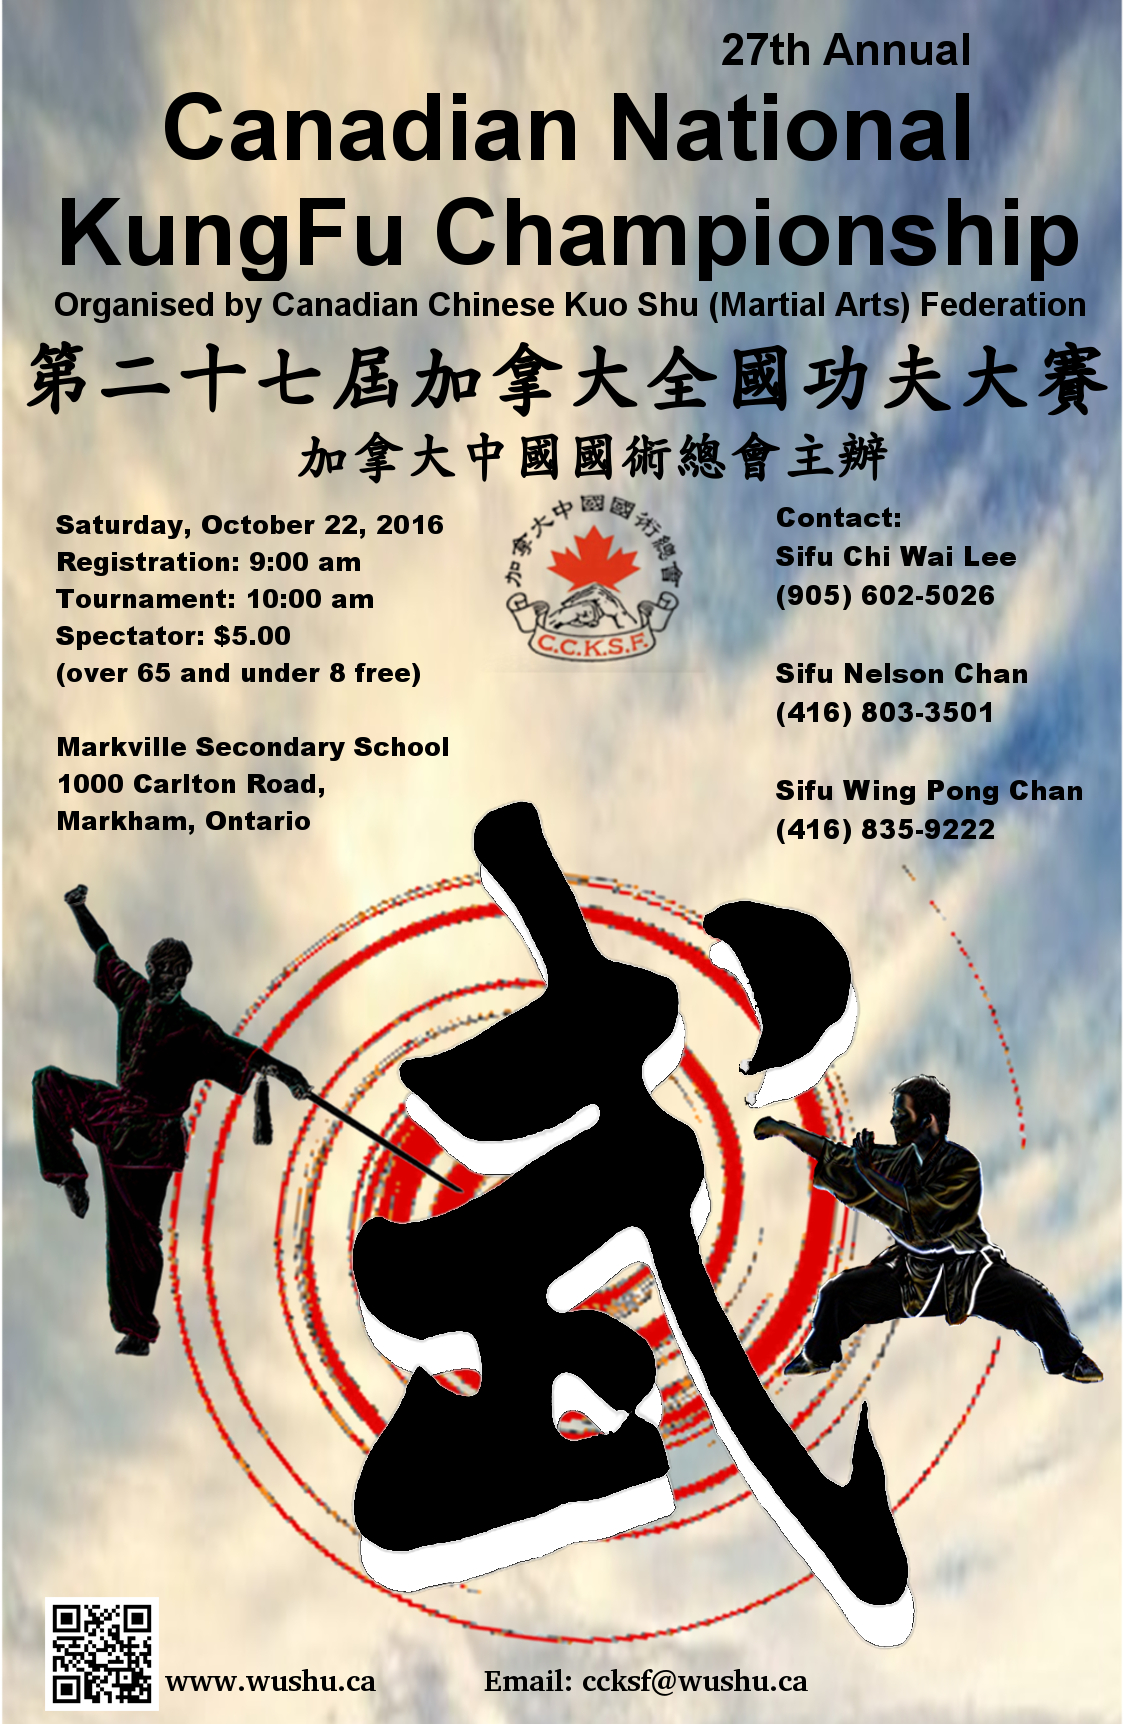 26th-annual-canadian-national-kungfu-championship